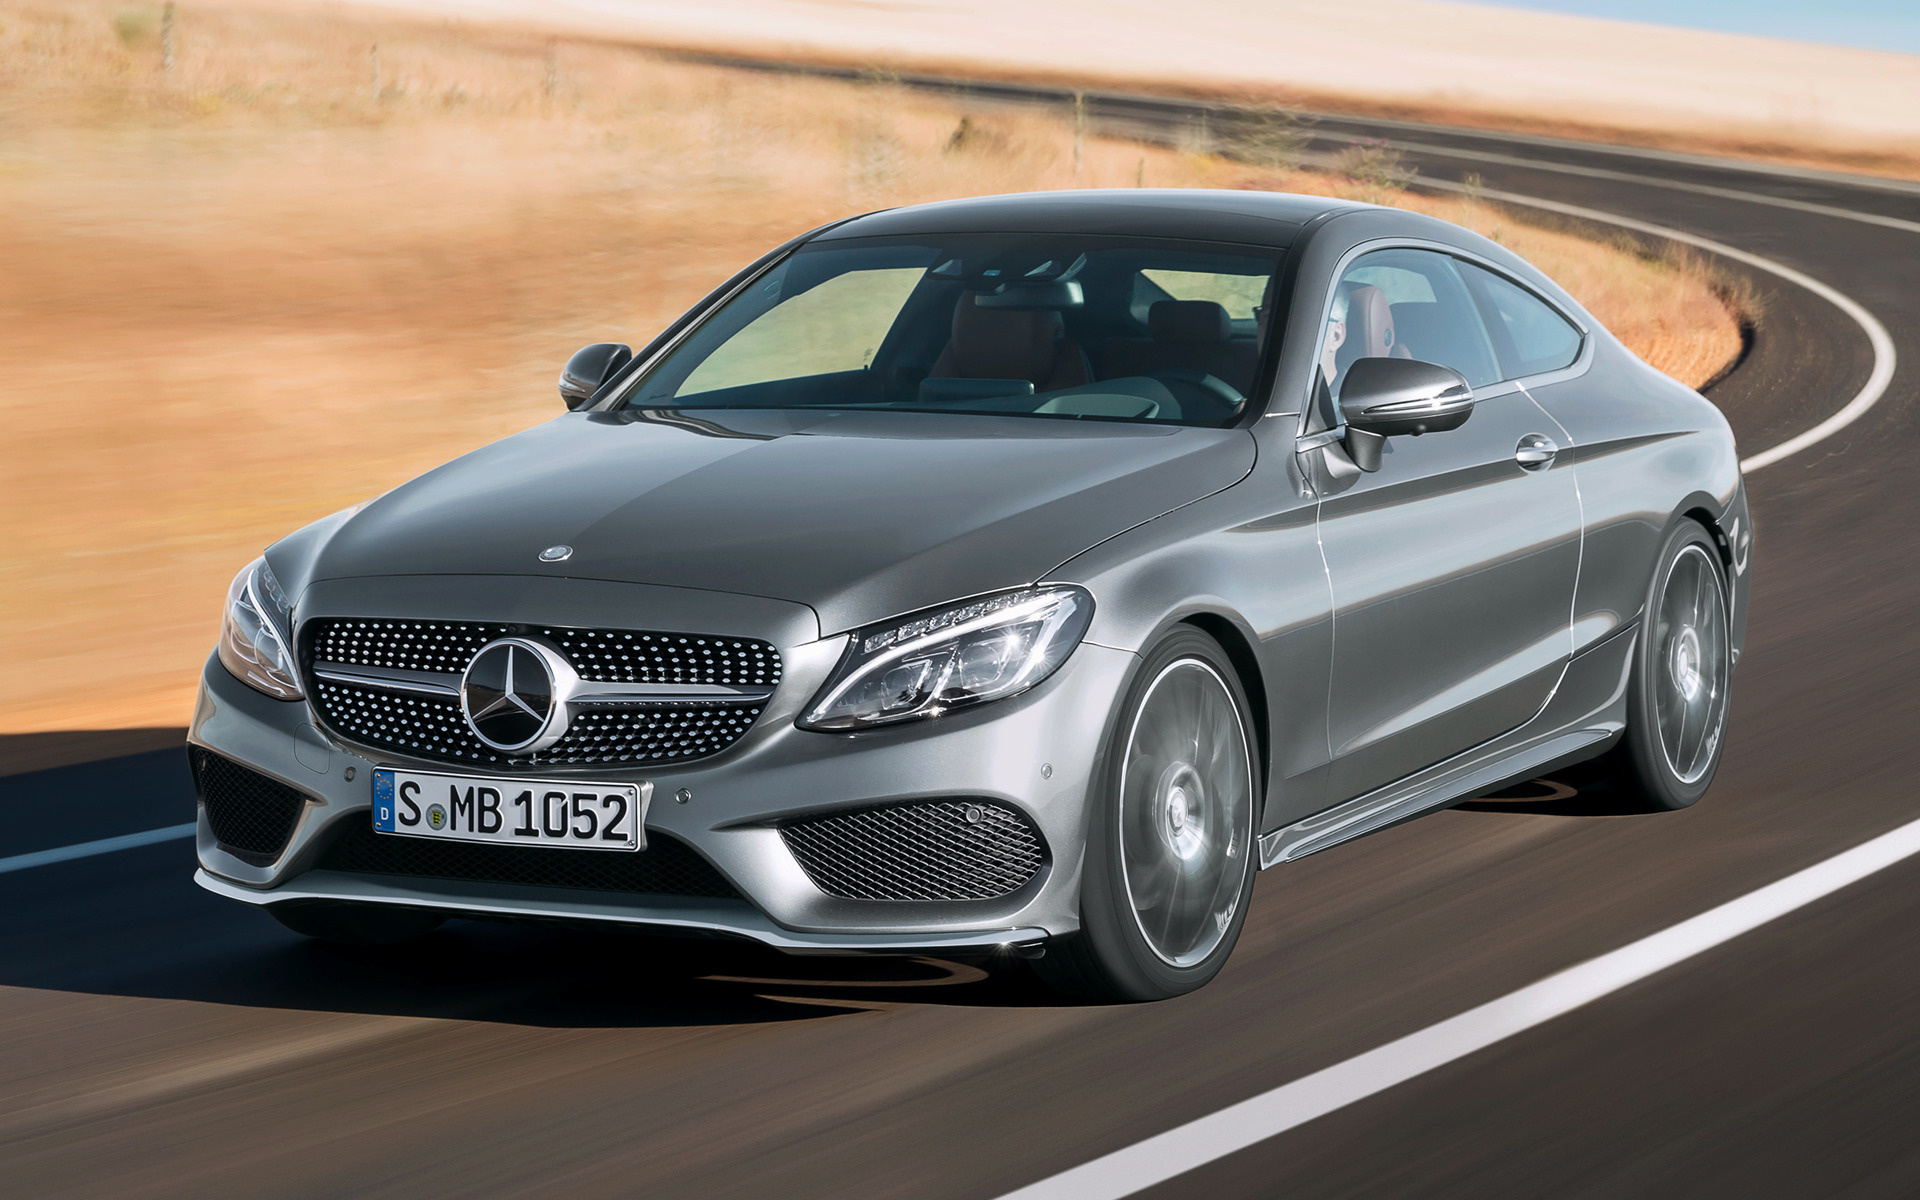 2015 Mercedes-Benz C-Class Coupe AMG Line